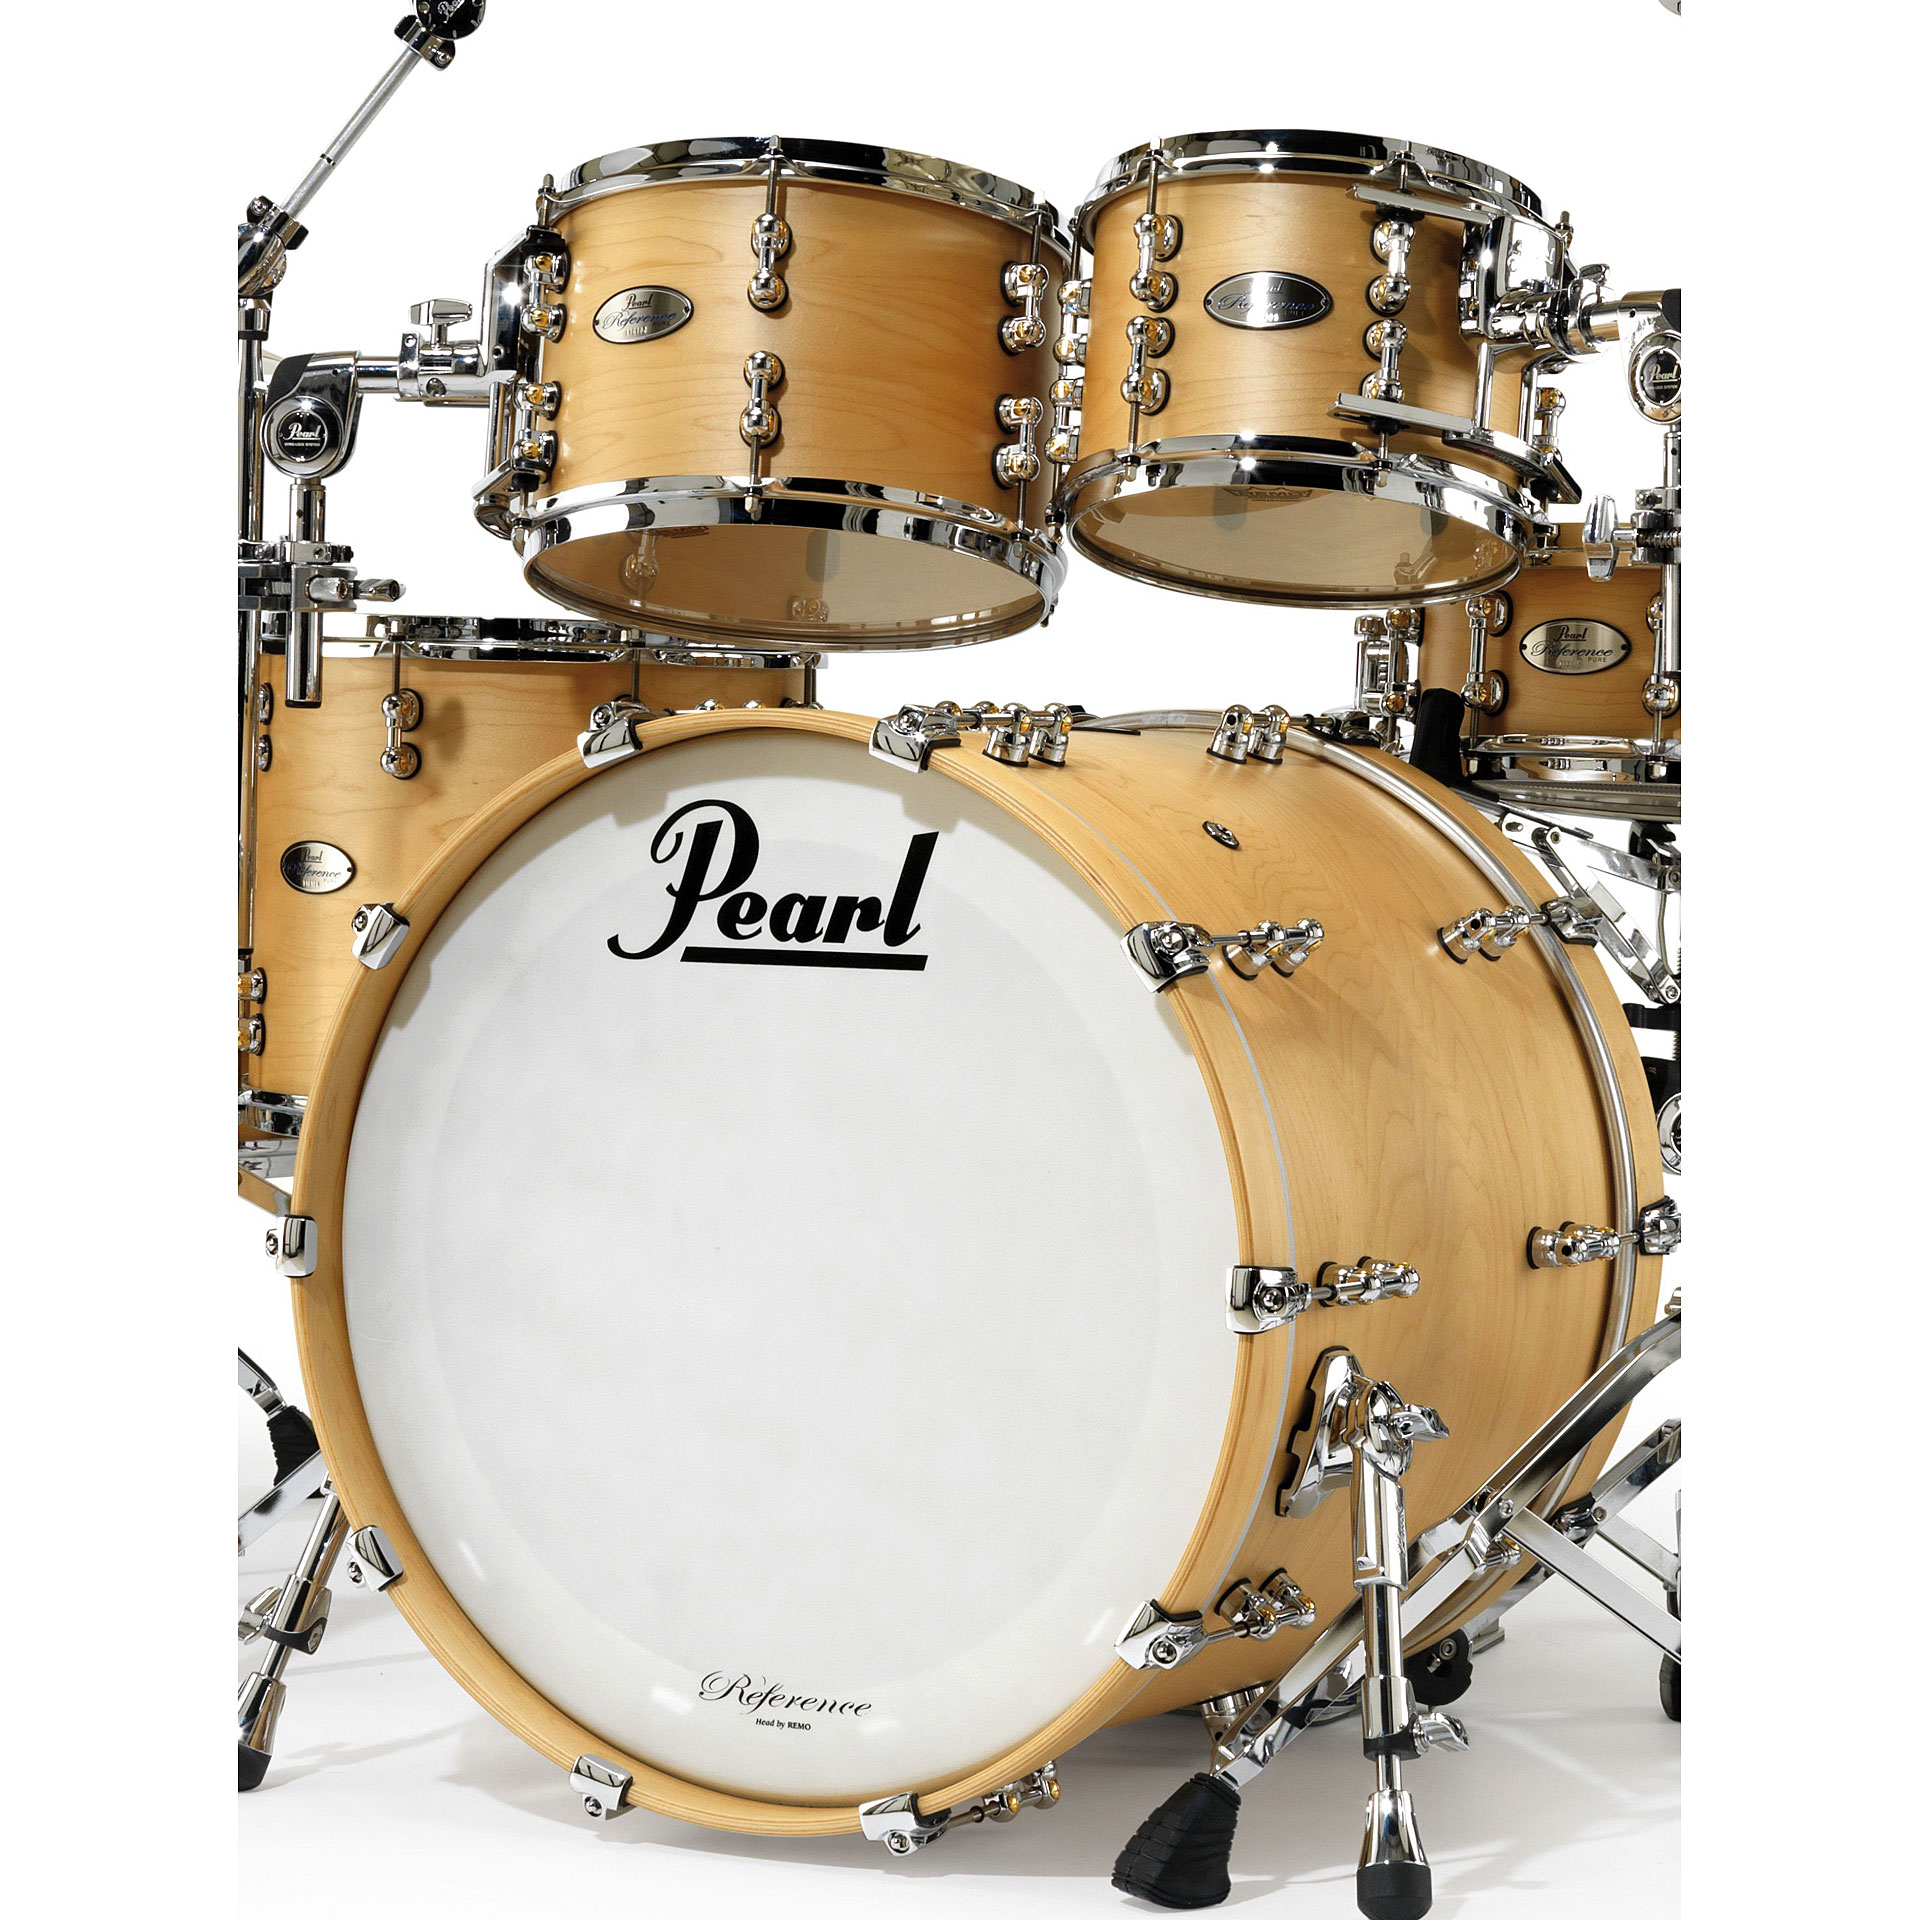 pearl reference pure rfp 924xep 111 matte natural drum kit. Black Bedroom Furniture Sets. Home Design Ideas